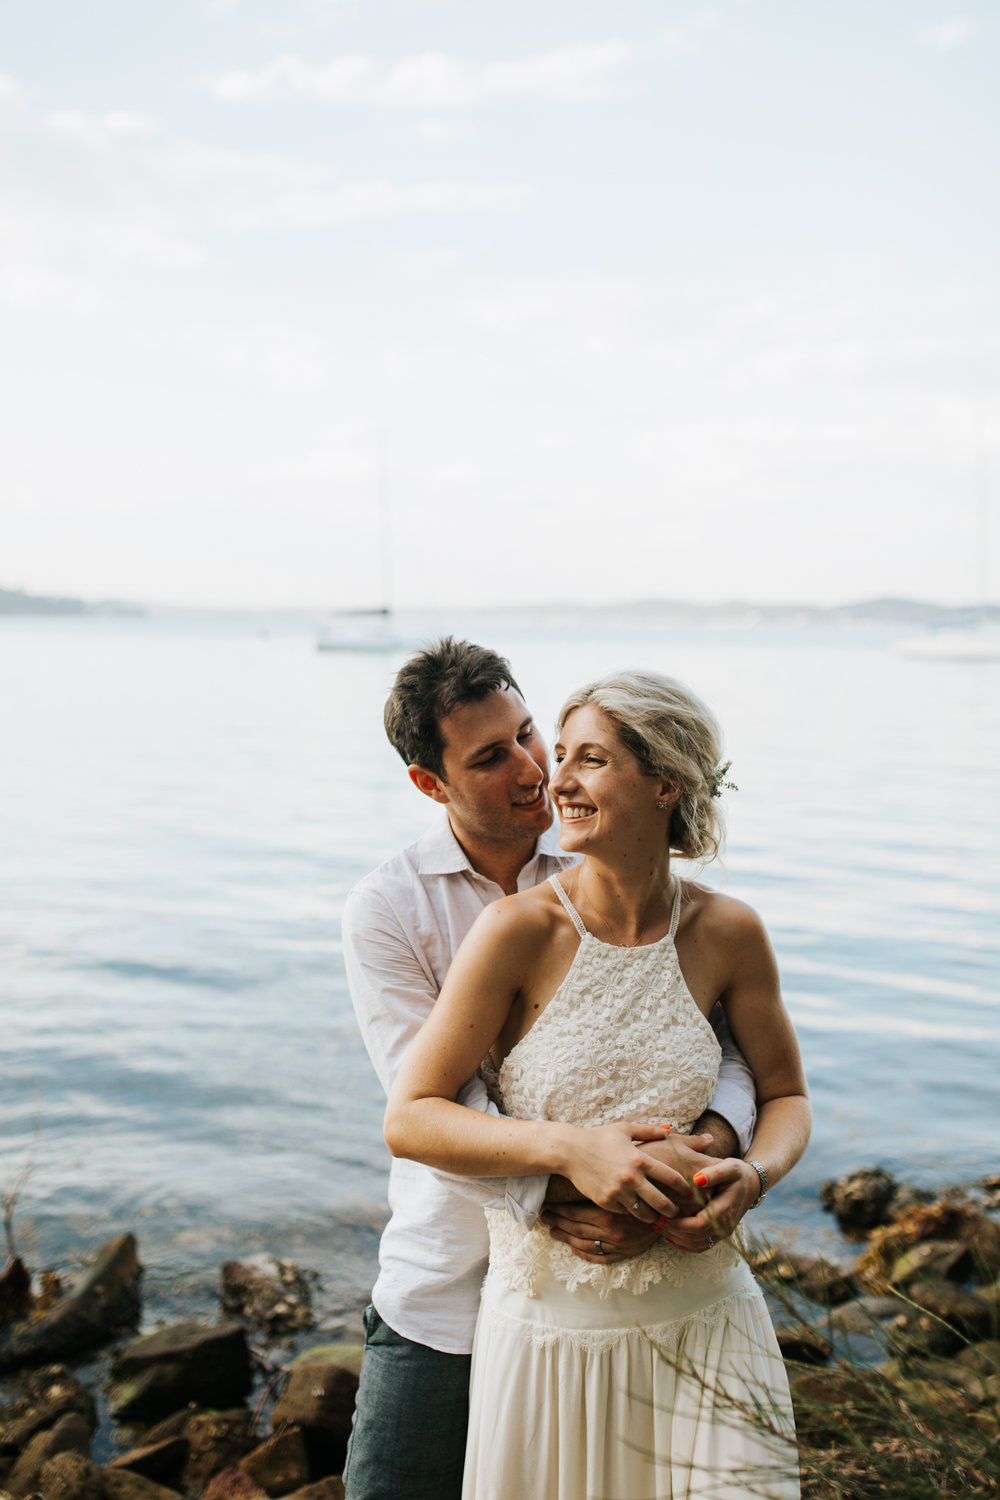 Emma & Ben - Lake Macquarie - Hunter Valley Wedding - Samantha Heather Photography-201.jpg